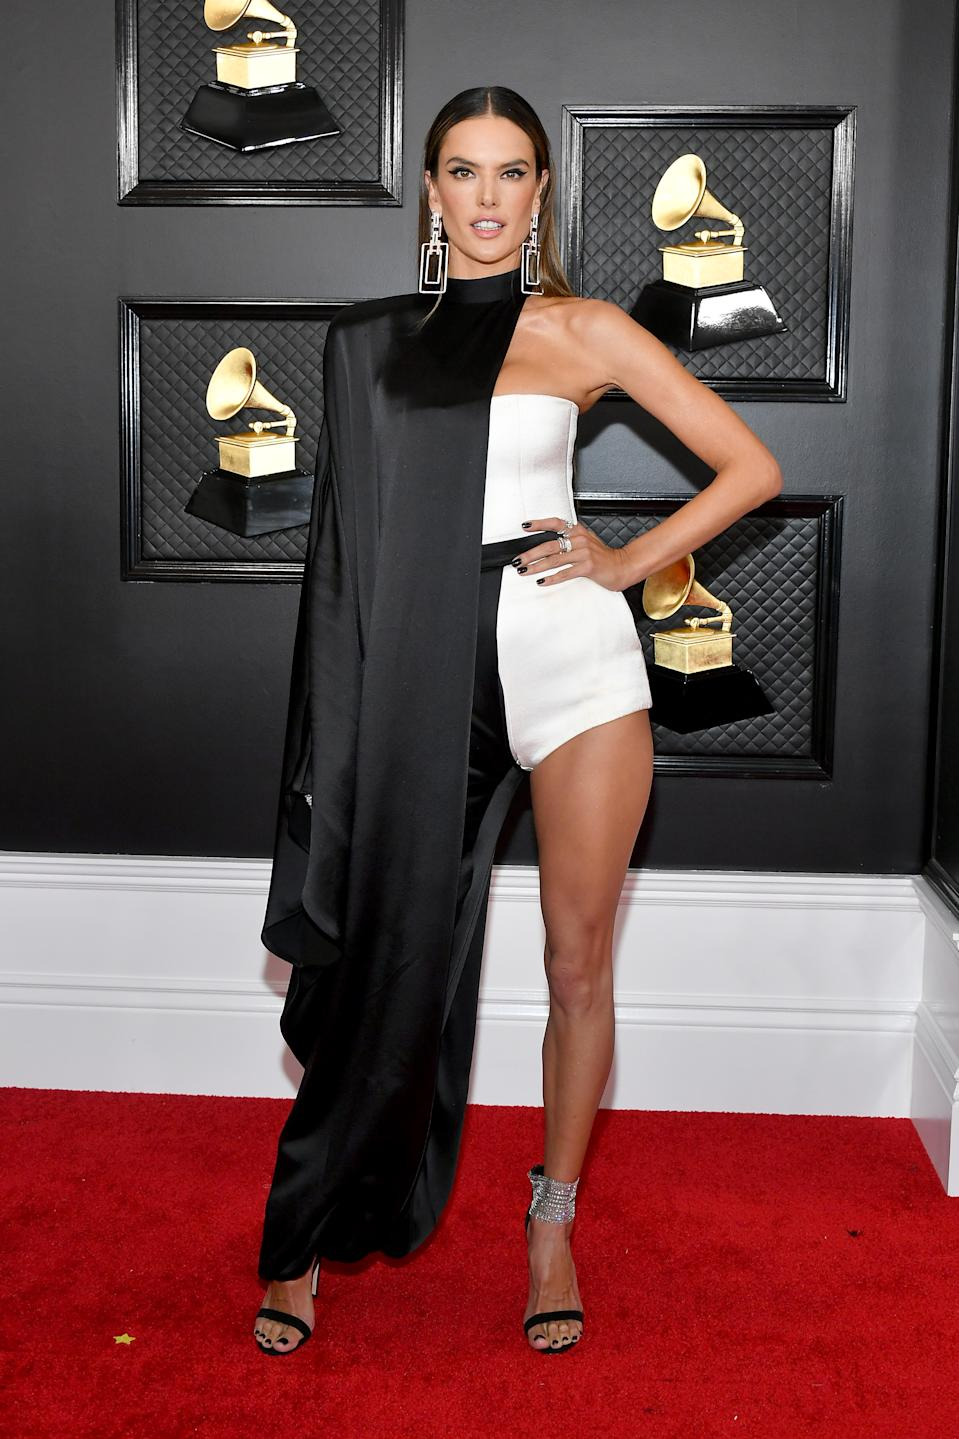 The Brazilian supermodel wore an outfit that could only be pulled off by a Brazilian supermodel! Ambrosio hit the red carpet in a caped monochrome look by Balmain.